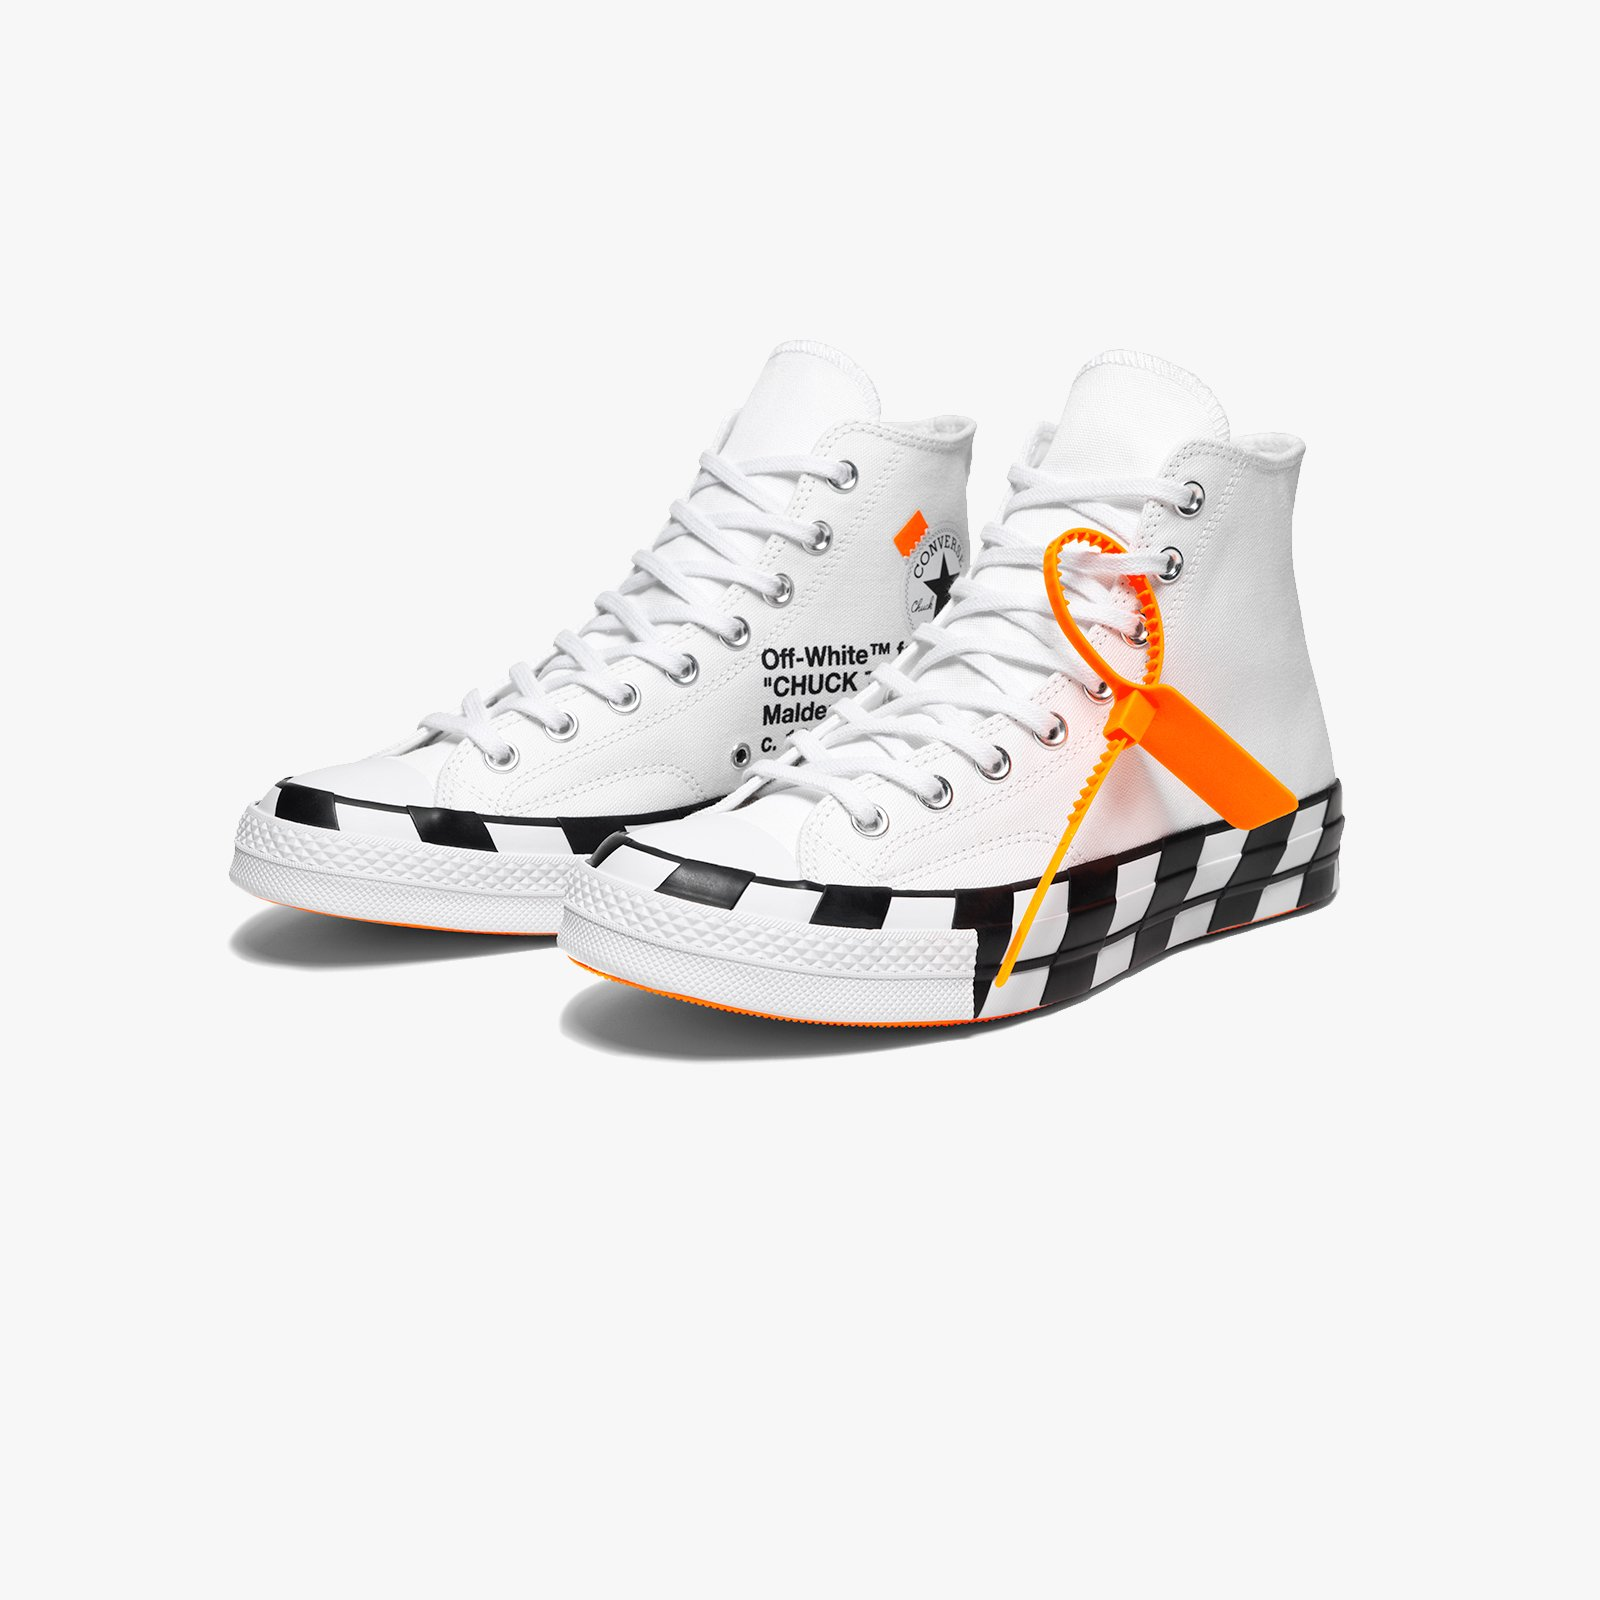 Converse Chuck Taylor 70 x Off White - 163862c - Sneakersnstuff ... 977afc1c2